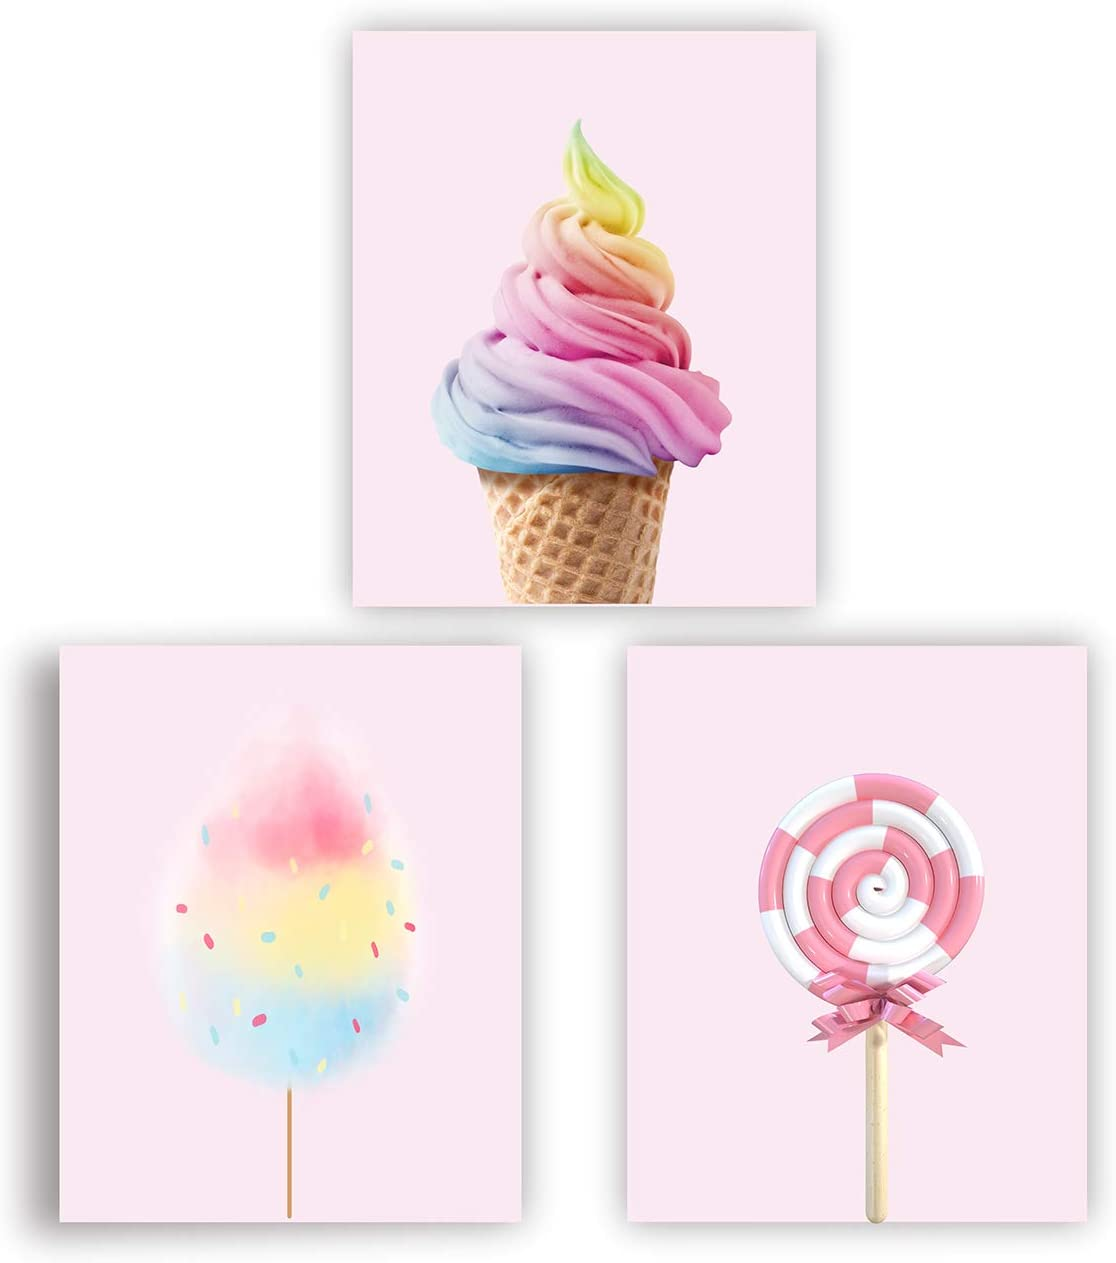 Candy Poster Rainbow Ice Cream Cotton Candy Wall Art Decor Girls Bedroom Wall Decor Modern Art Pink Poster (UNFRAMED)